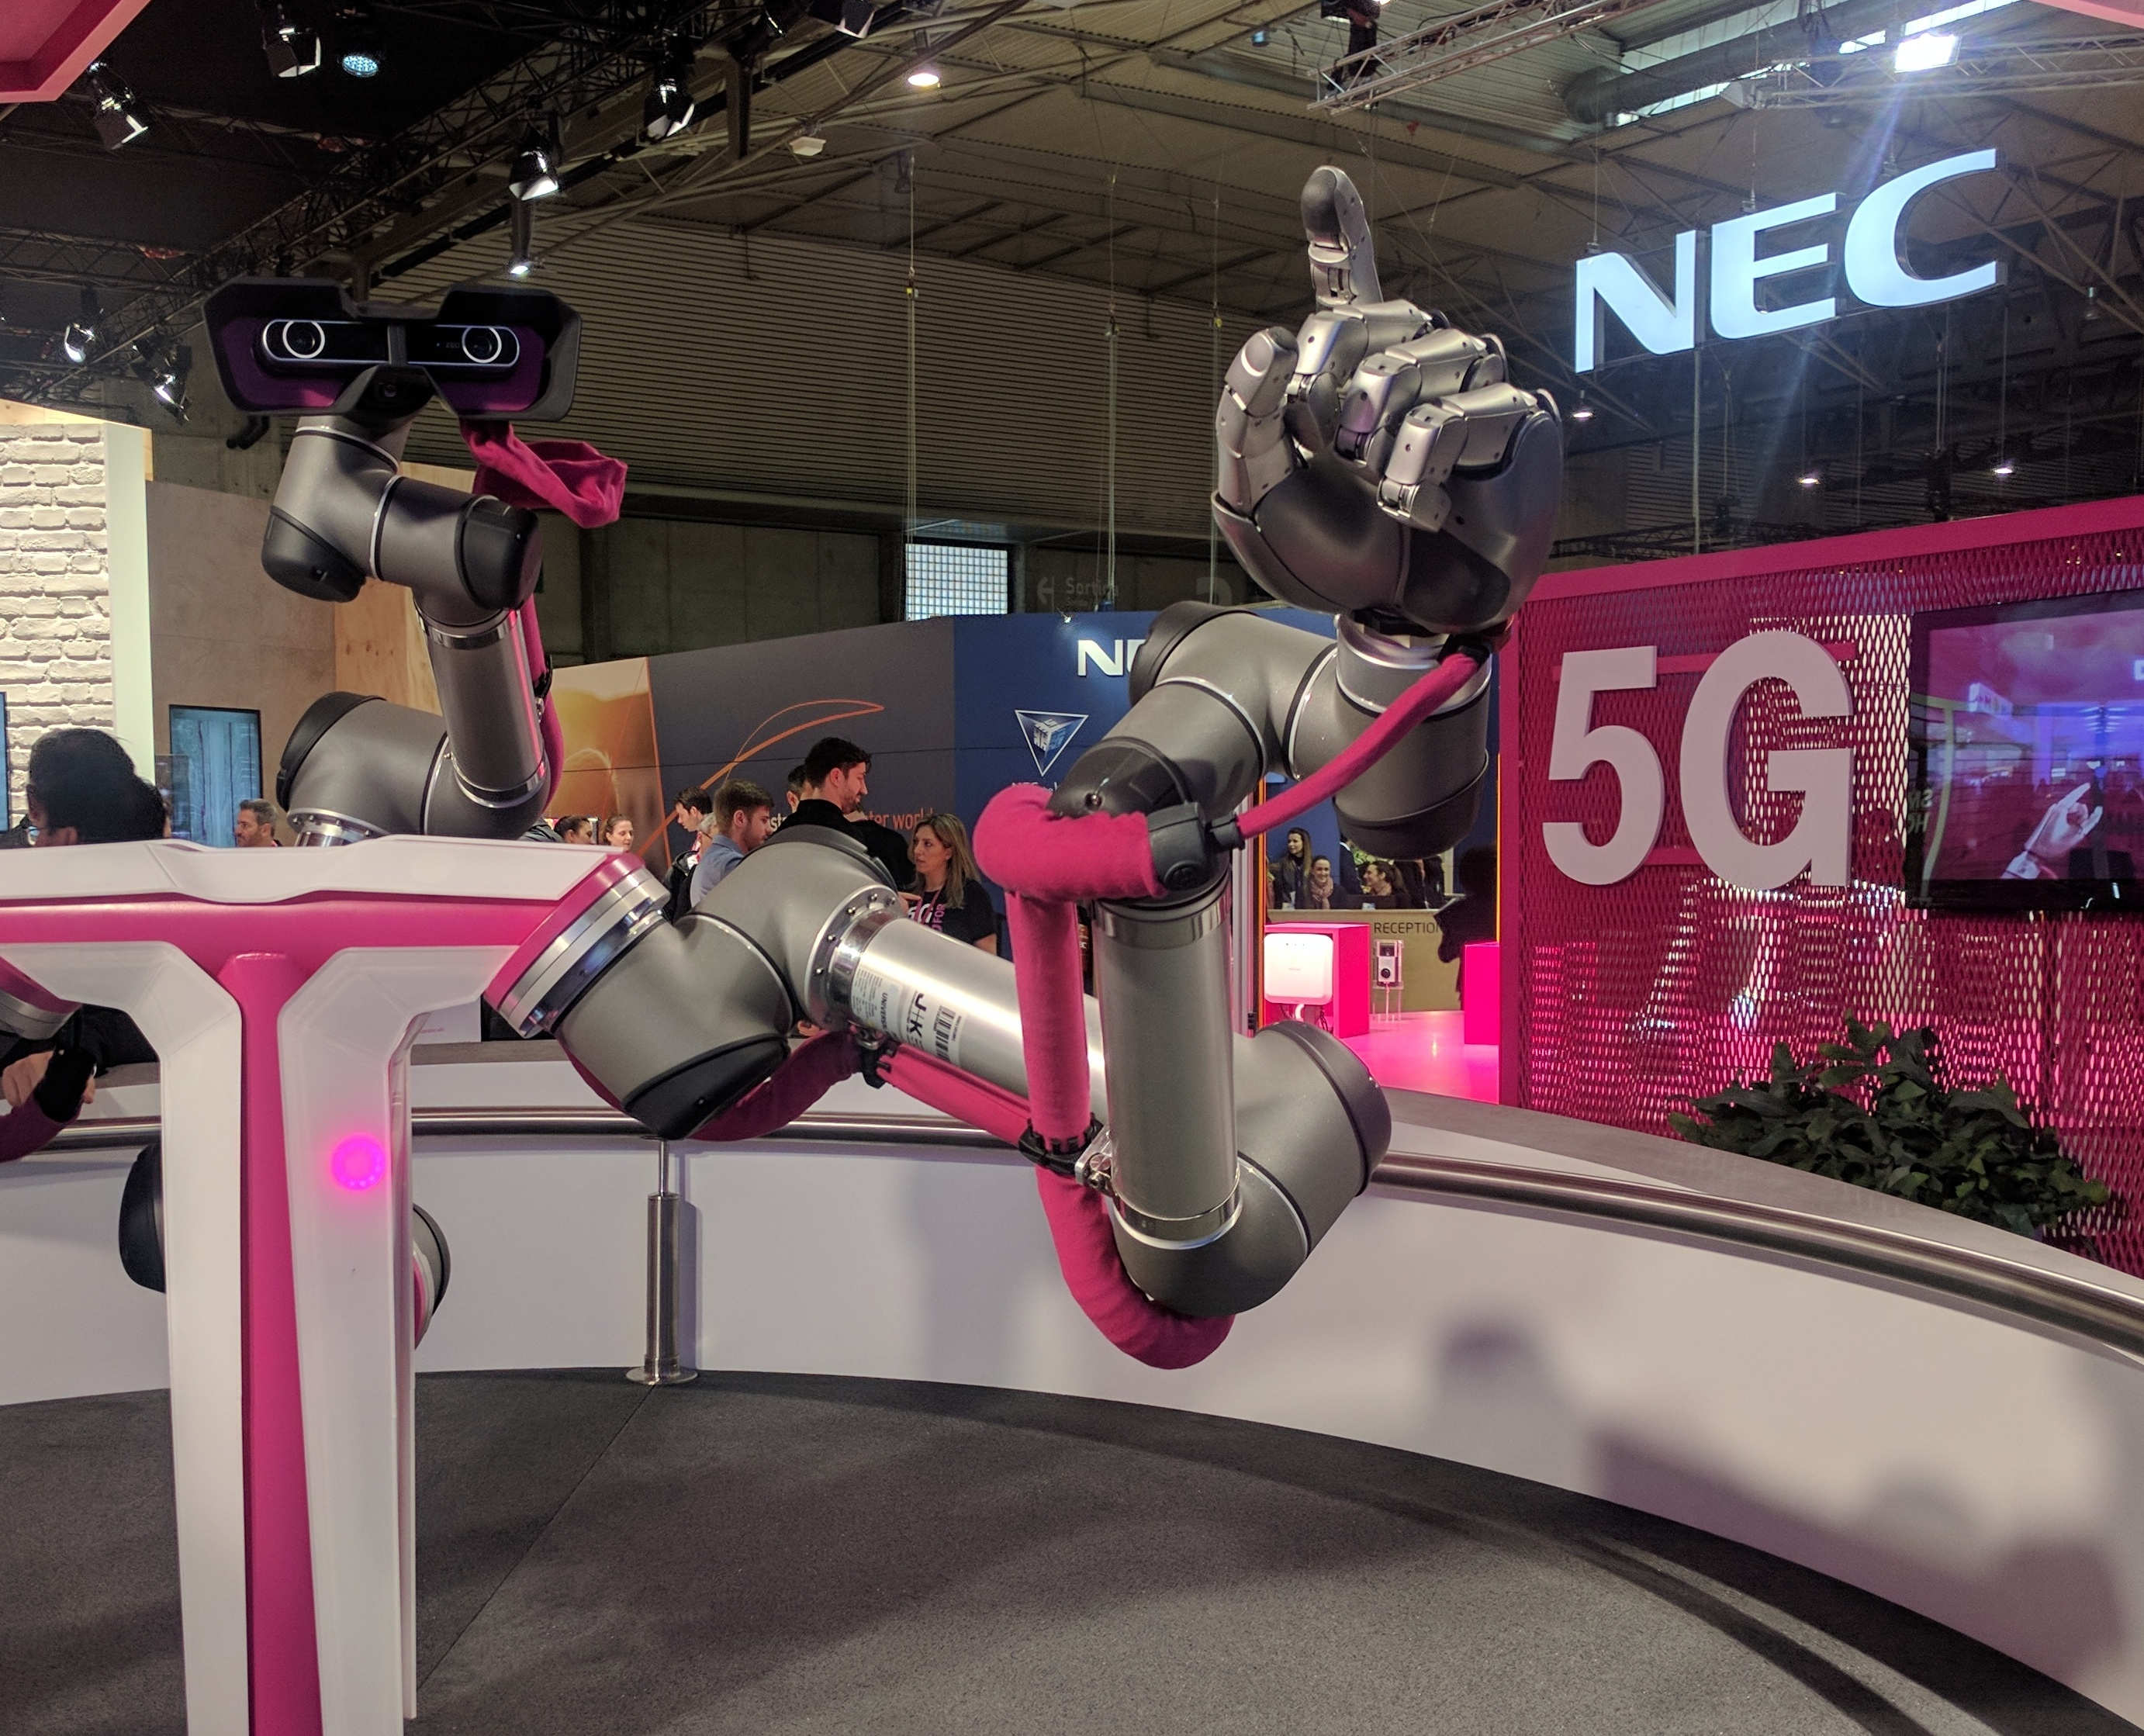 'T-Mobile 5G robot' by robpegoraro is licensed with CC BY-NC-SA 2.0.